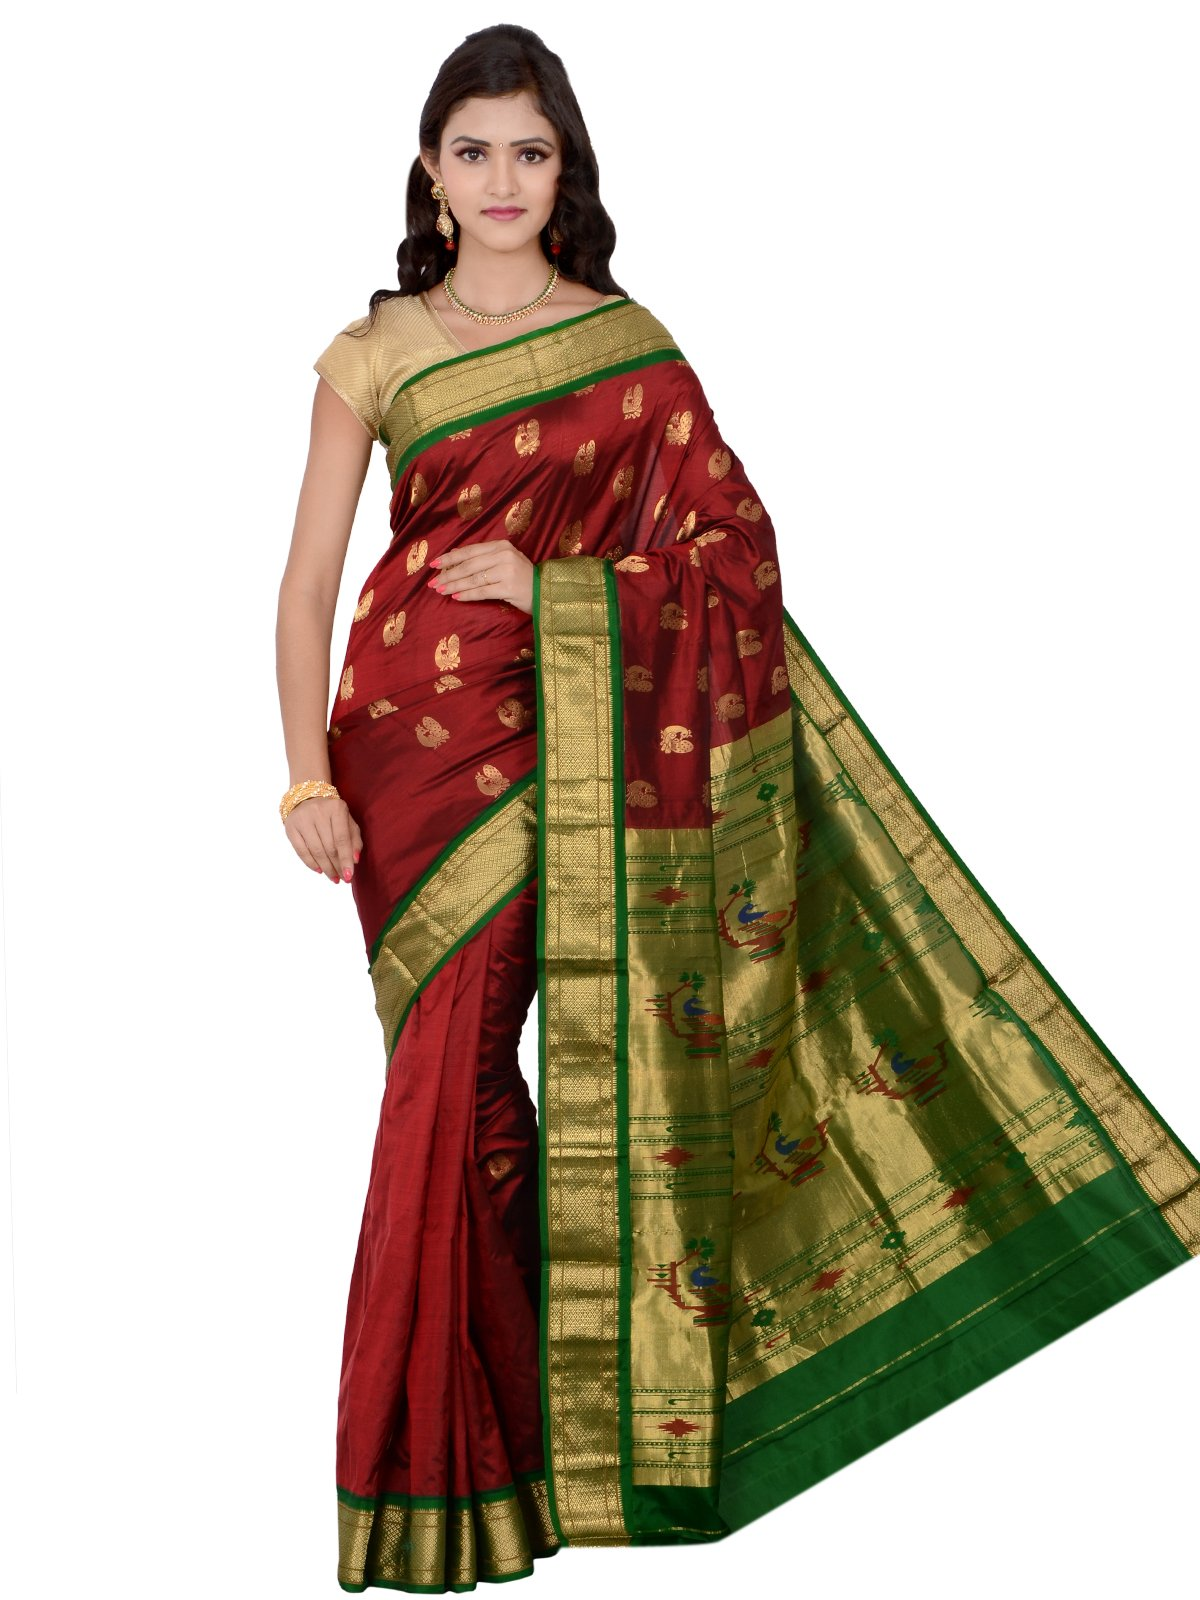 Indian Silks Peacock Design Paithani Handloom Pure Silk Saree, With Unstitched Blouse Piece (Maroon)